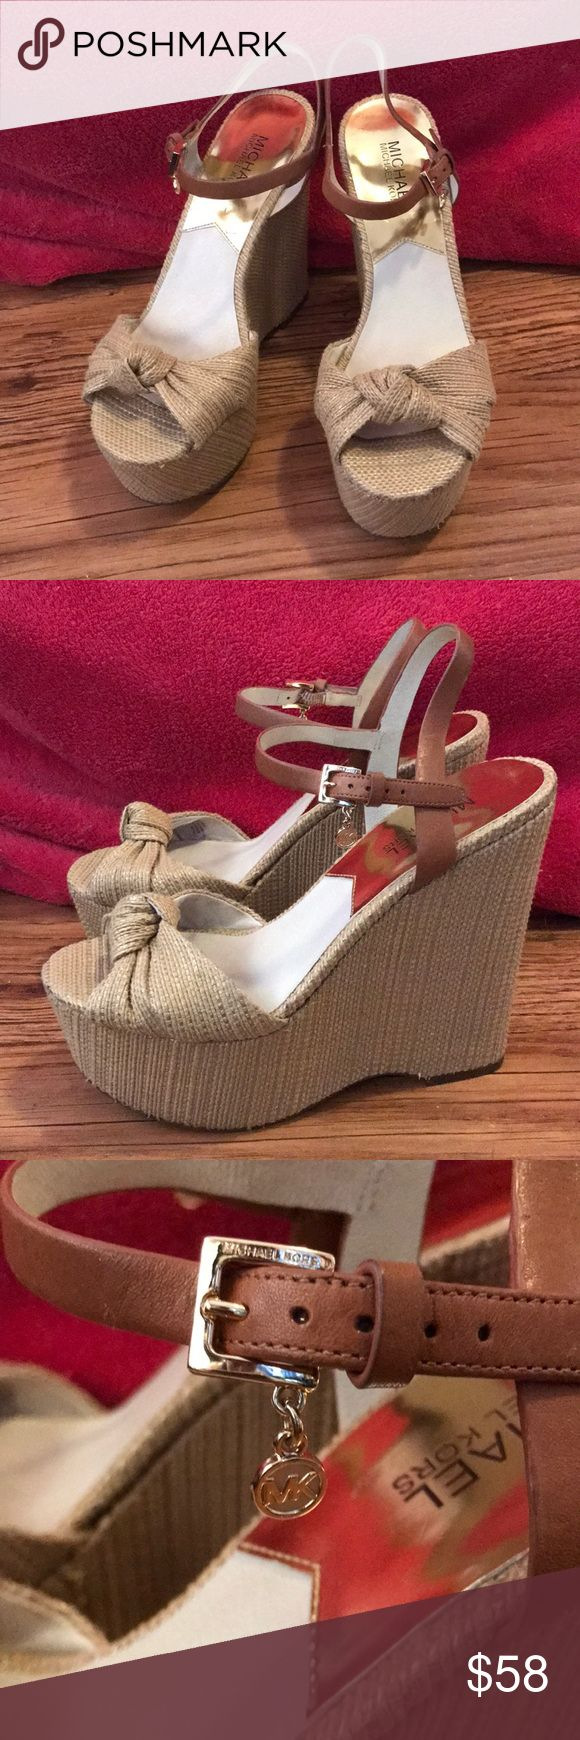 Michael Kors Wedges Worn a few times, but only noticeable on the bottom. Excellent condition. Super comfortable. Hate to part with them but they're great! for Las Vegas pool parties or weddings or brunch. Bought at marshalls for 50 Michael Kors Shoes Wedges